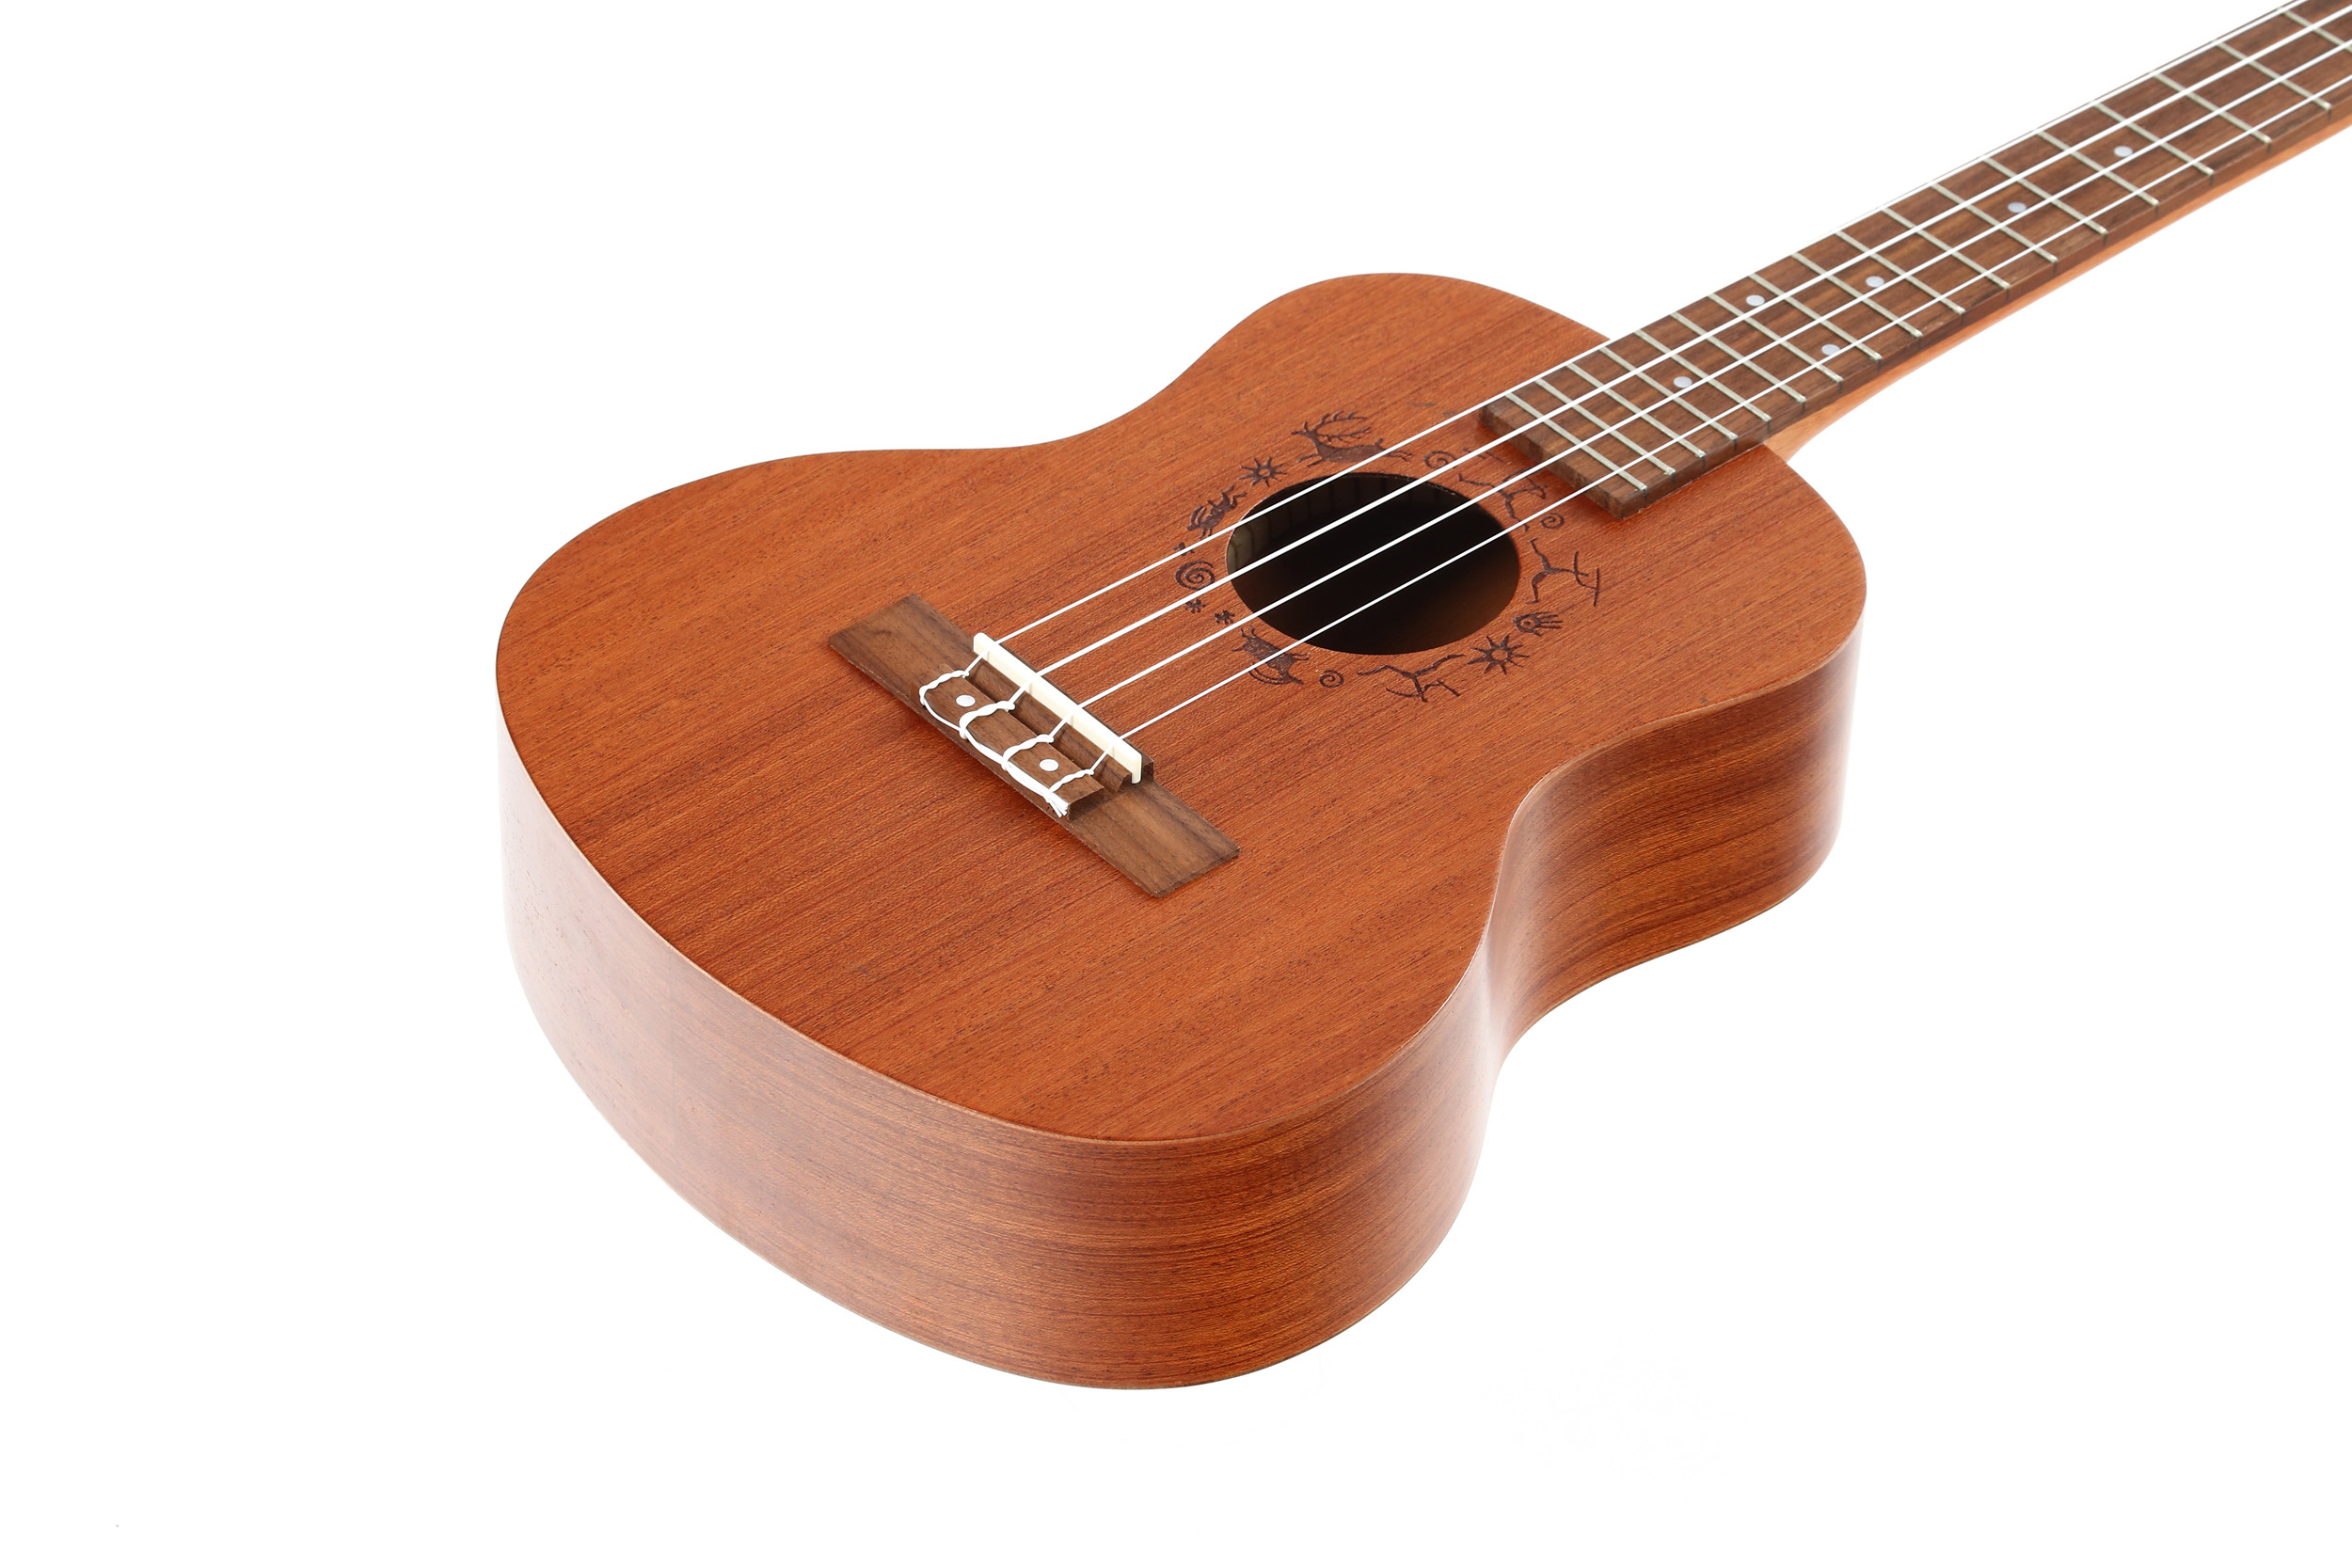 Flight Nut-310 Tenor Ukulele mit Tasche_1WF